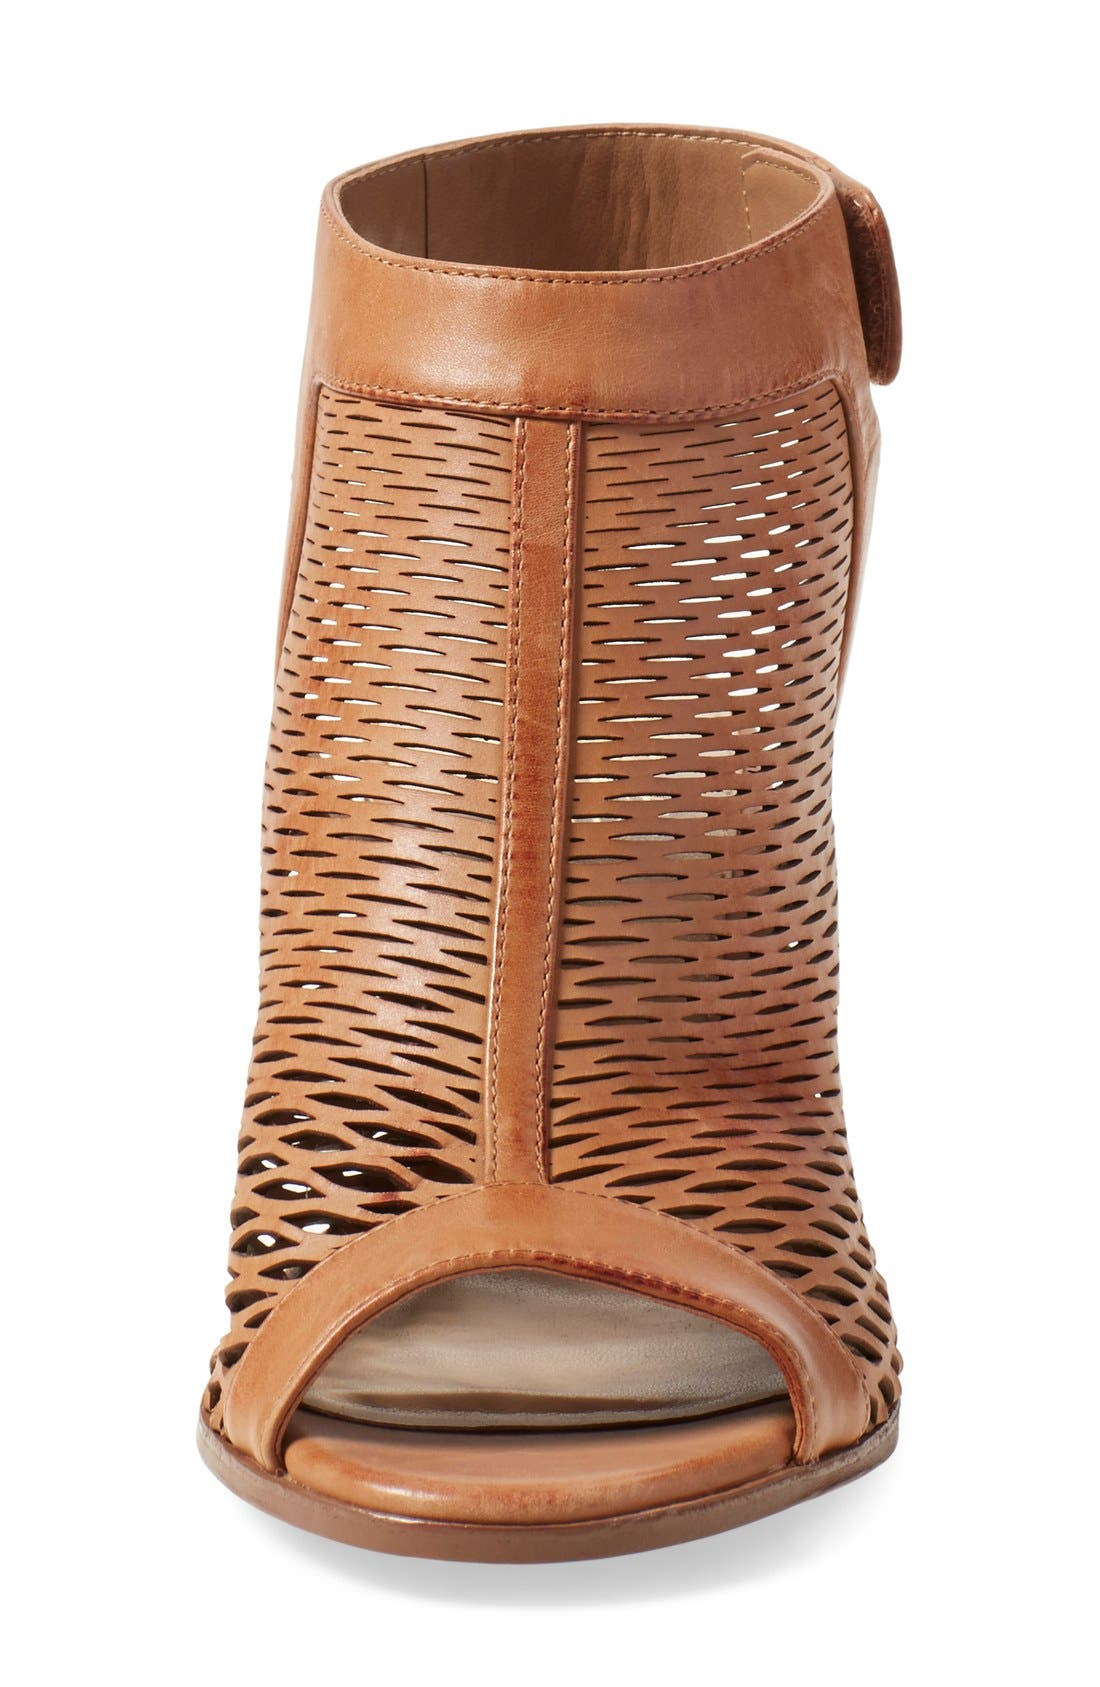 Alternate Image 3  - Vince Camuto 'Lavette' Perforated Peep Toe Bootie (Women) (Nordstrom Exclusive)